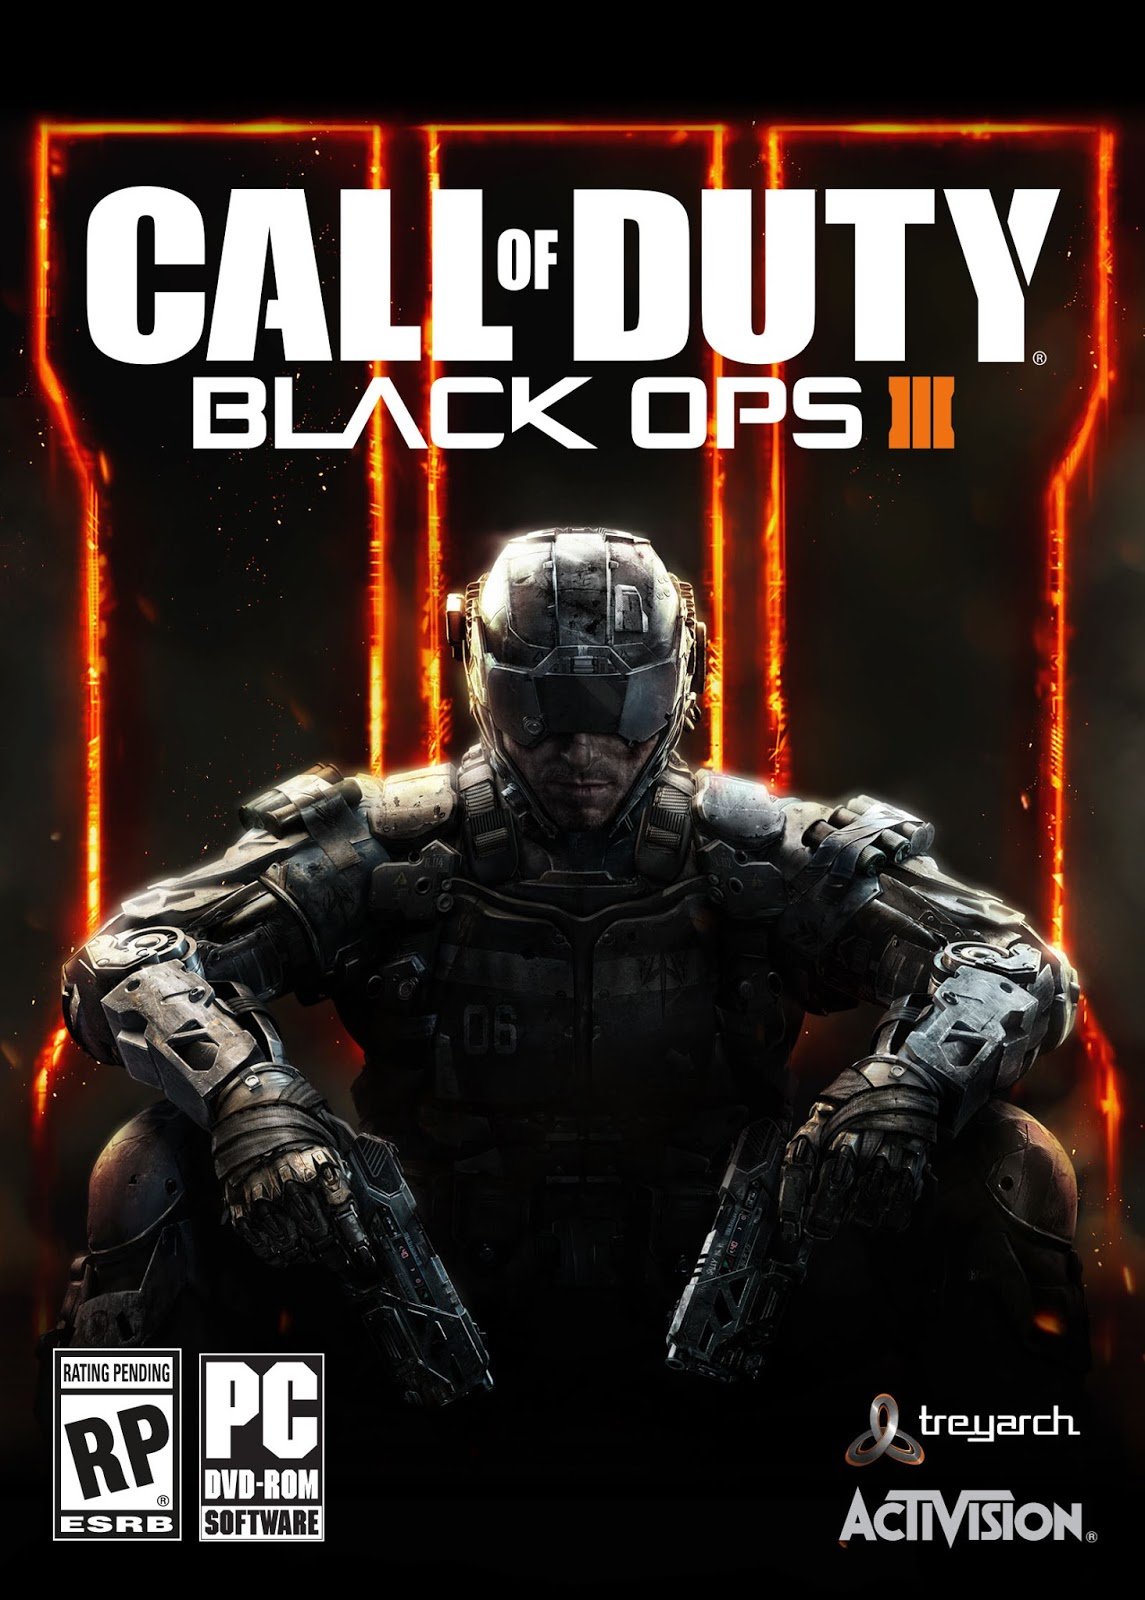 Call Of Duty Black Ops III ESPAÑOL PC Full Cover Caratula